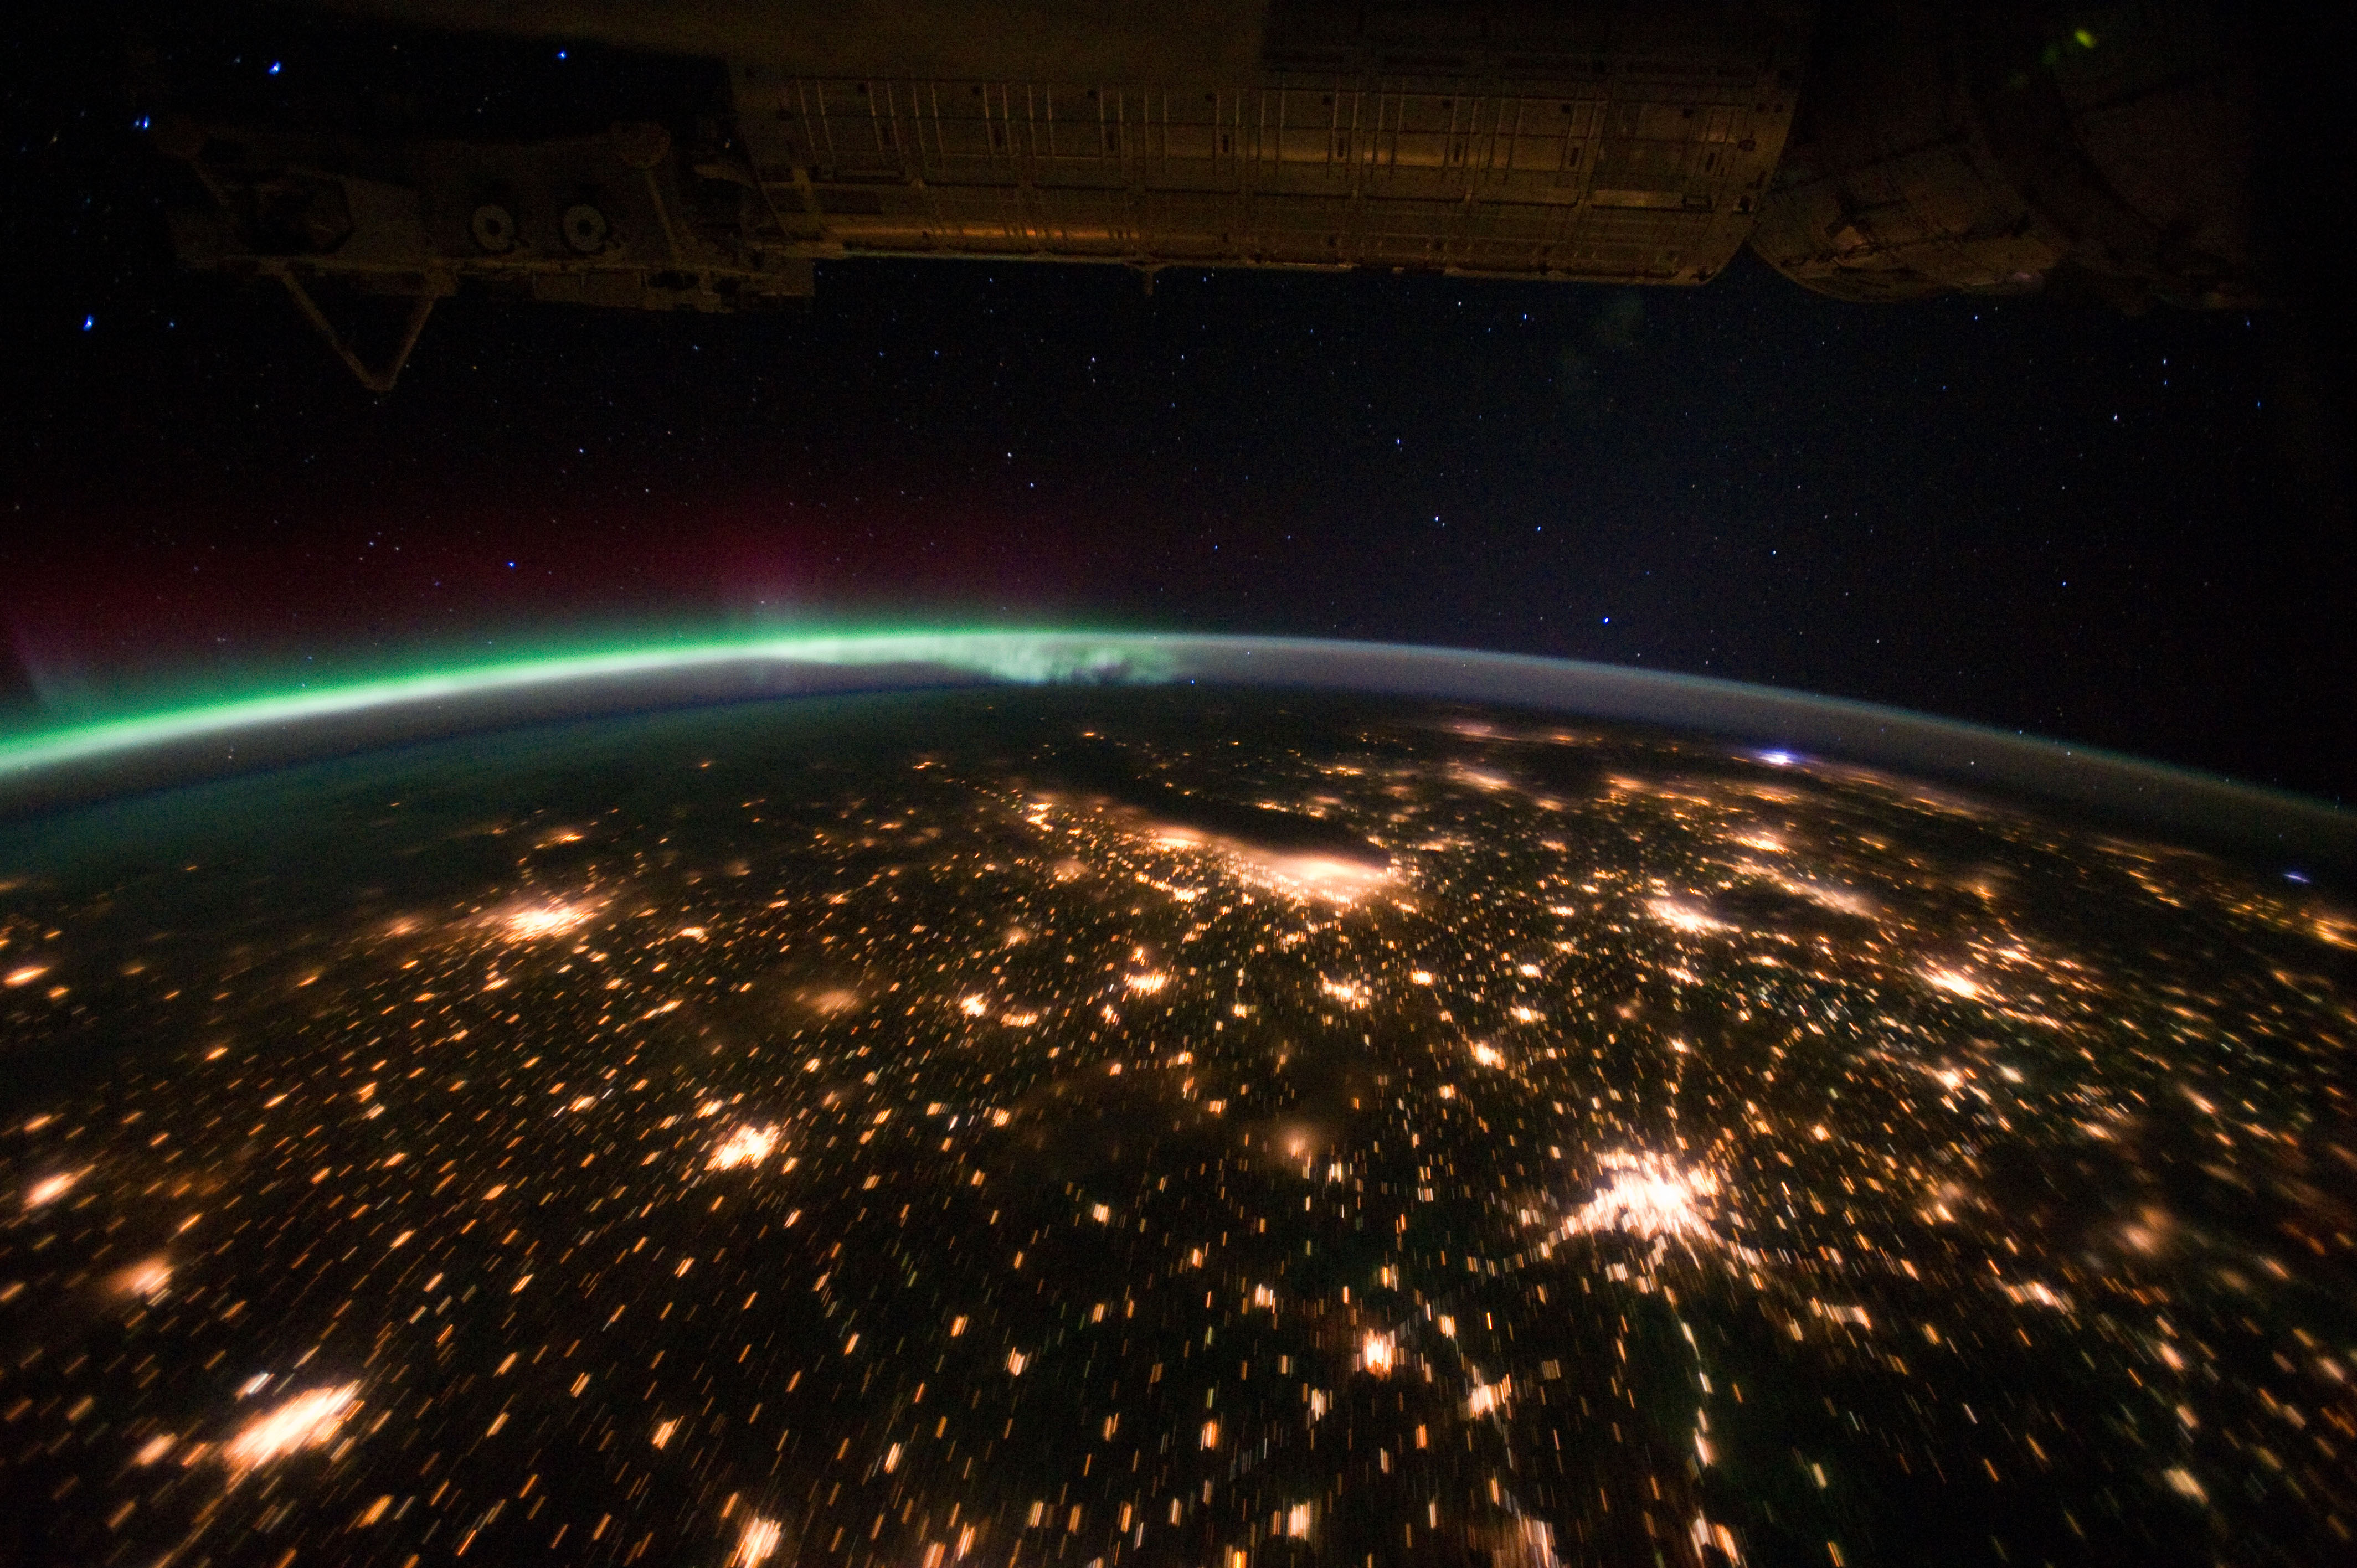 nasa night view of earth - photo #29